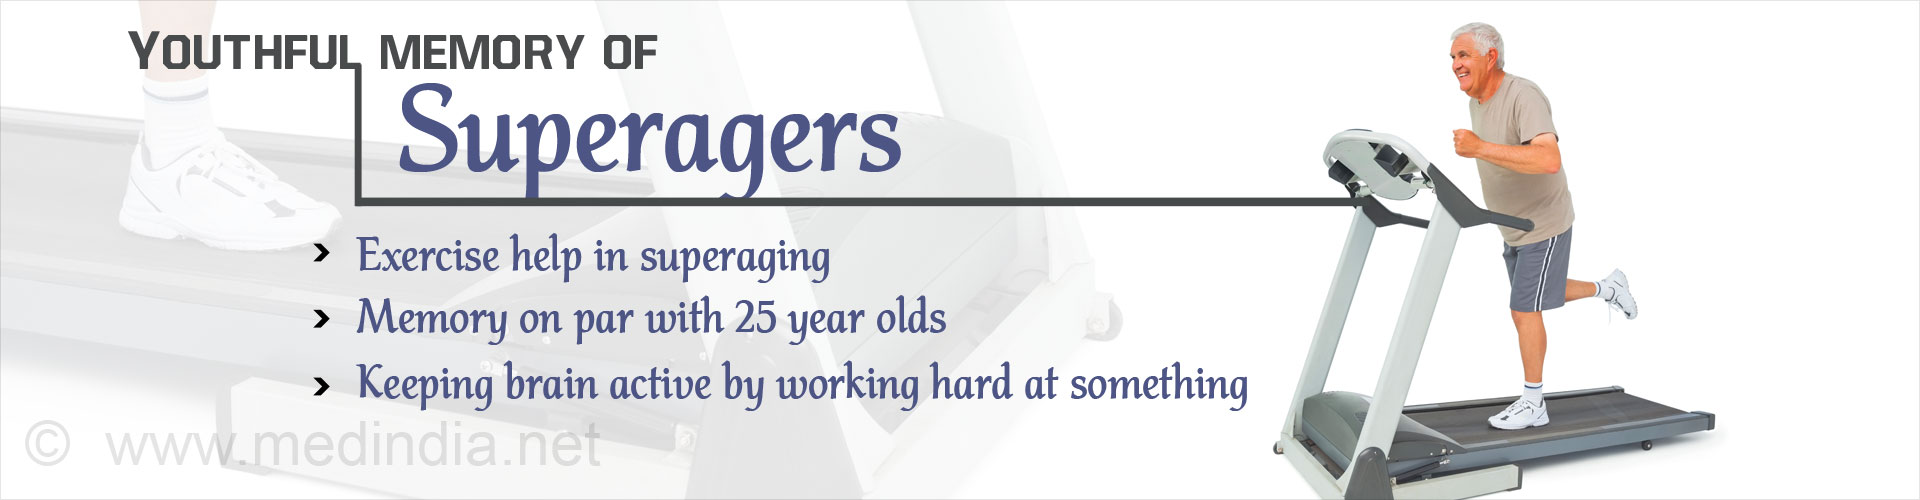 Youthful memory of superagers - Exercise helps in superaging - Memory on par with 25 year olds - Keeping brain active by working hard at something